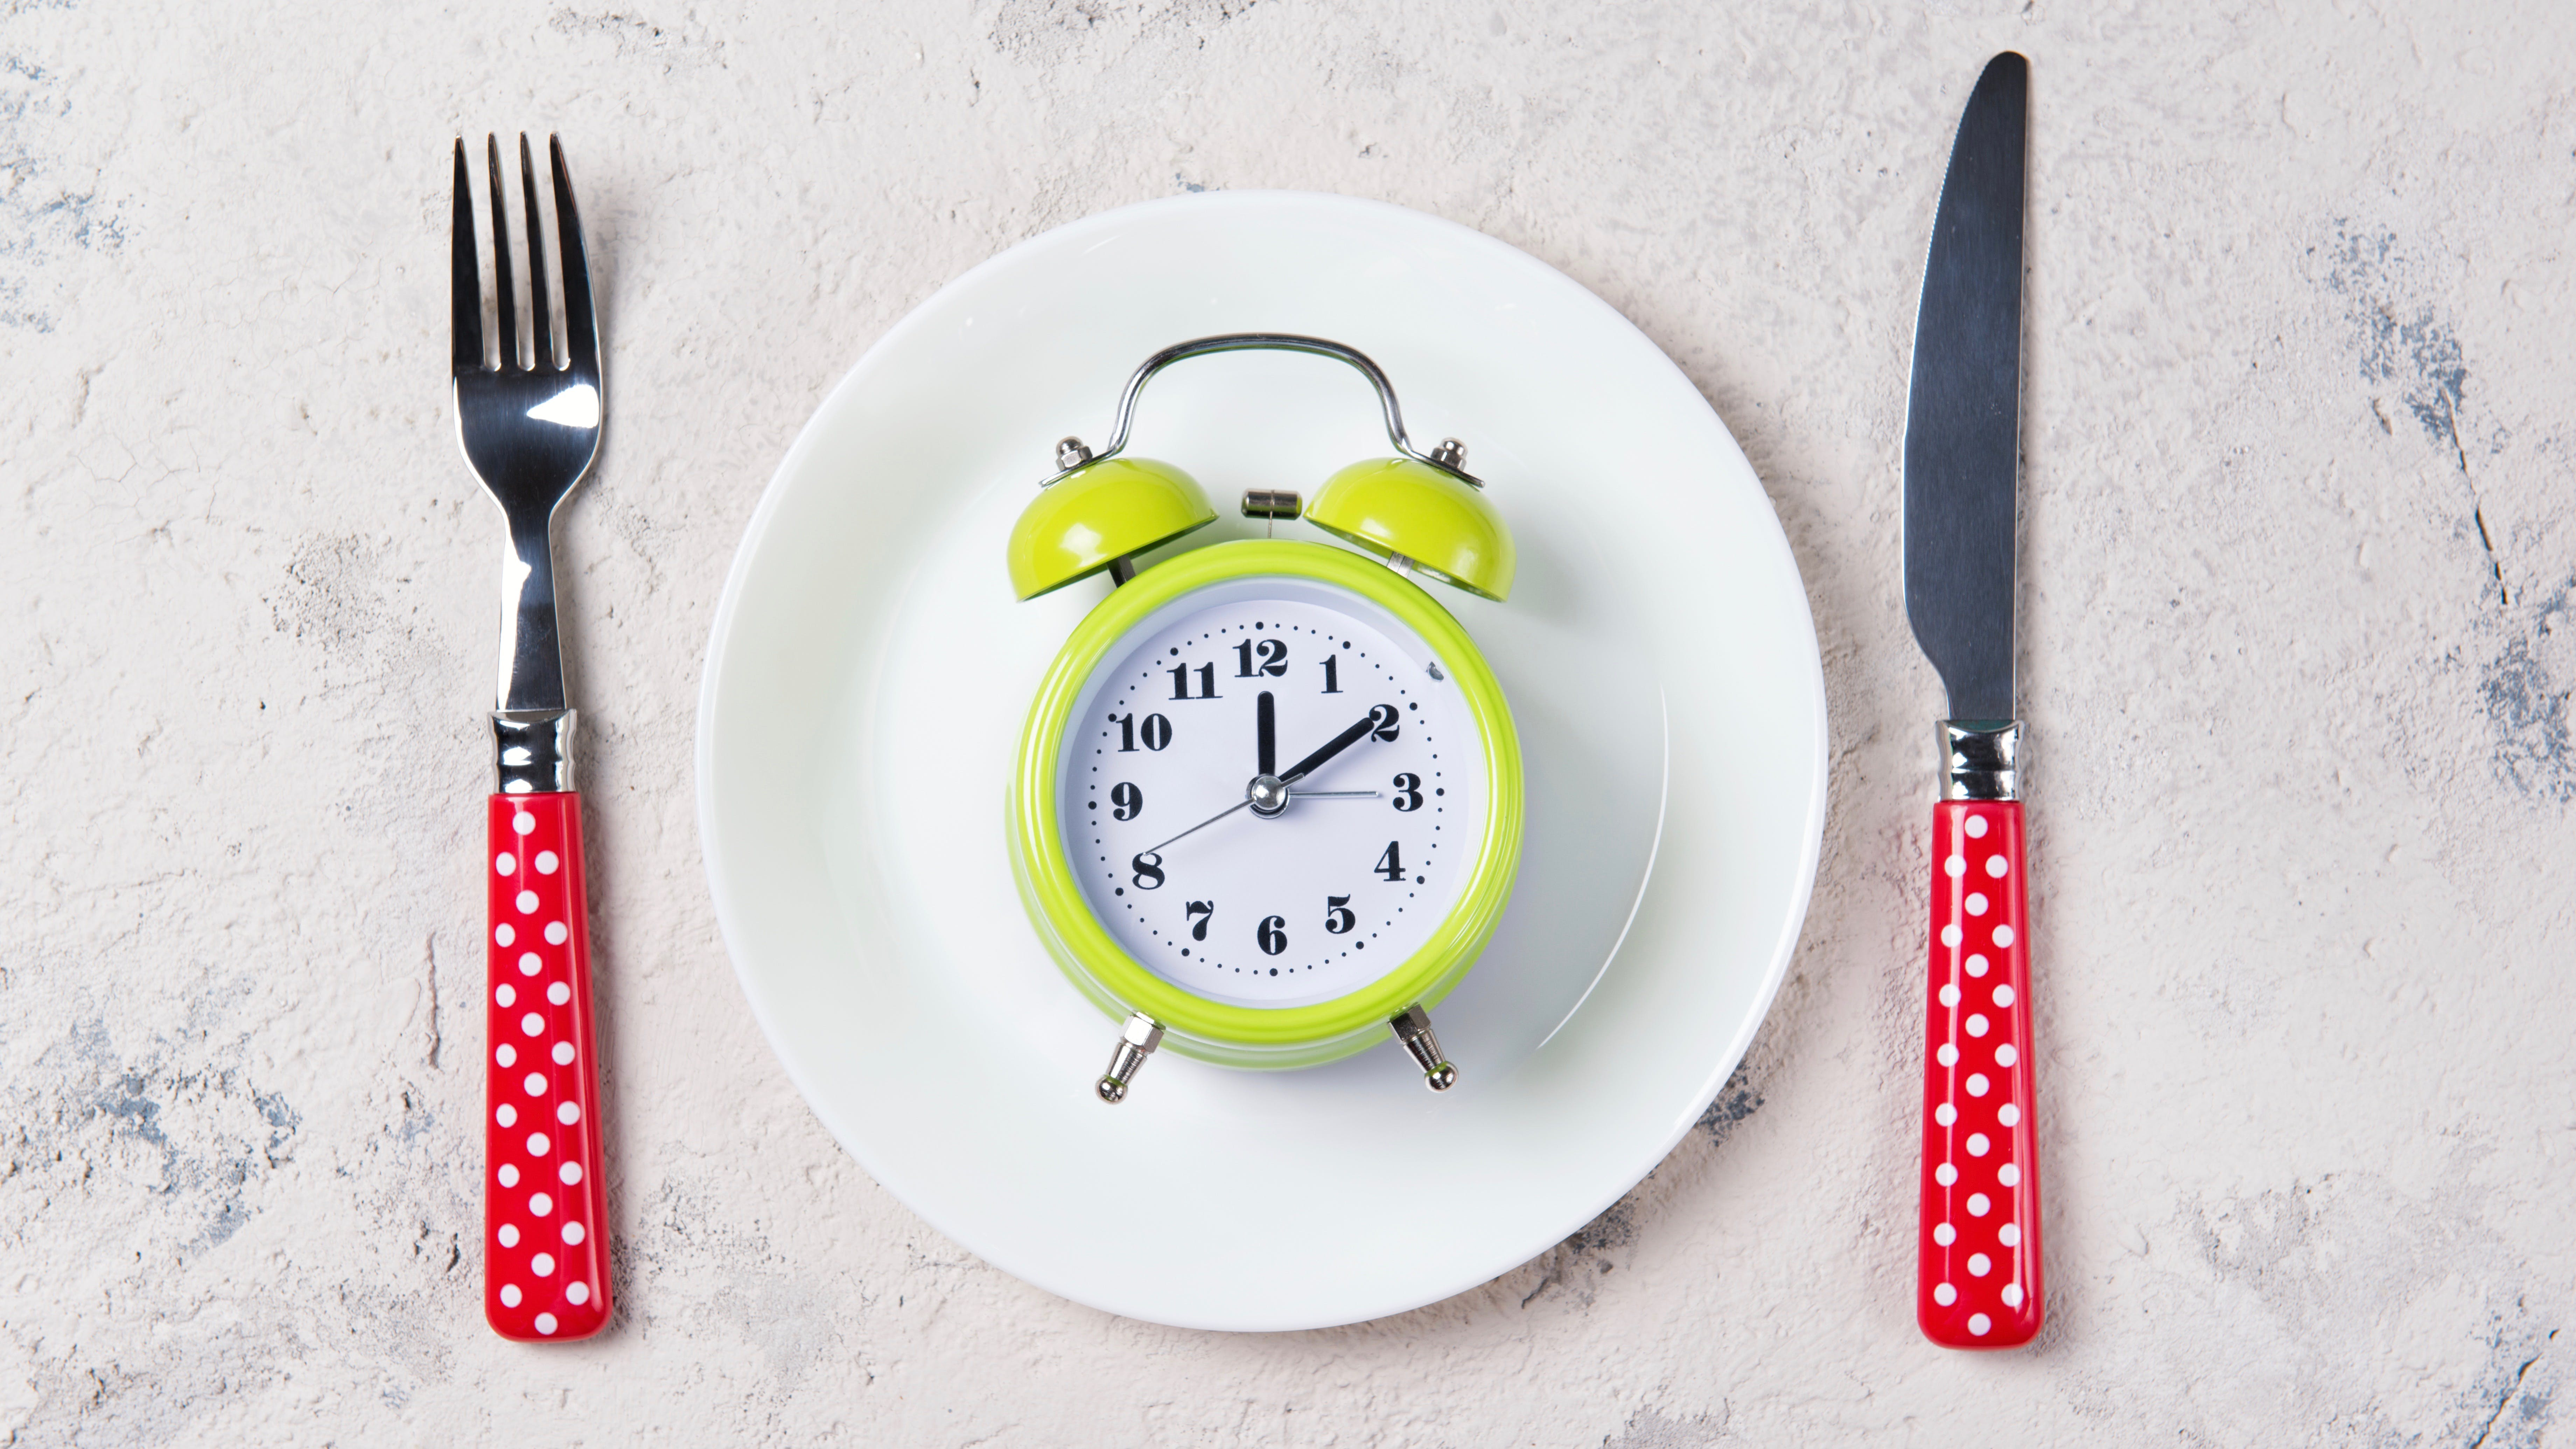 Intermittent fasting — the best diet for type 2 diabetes